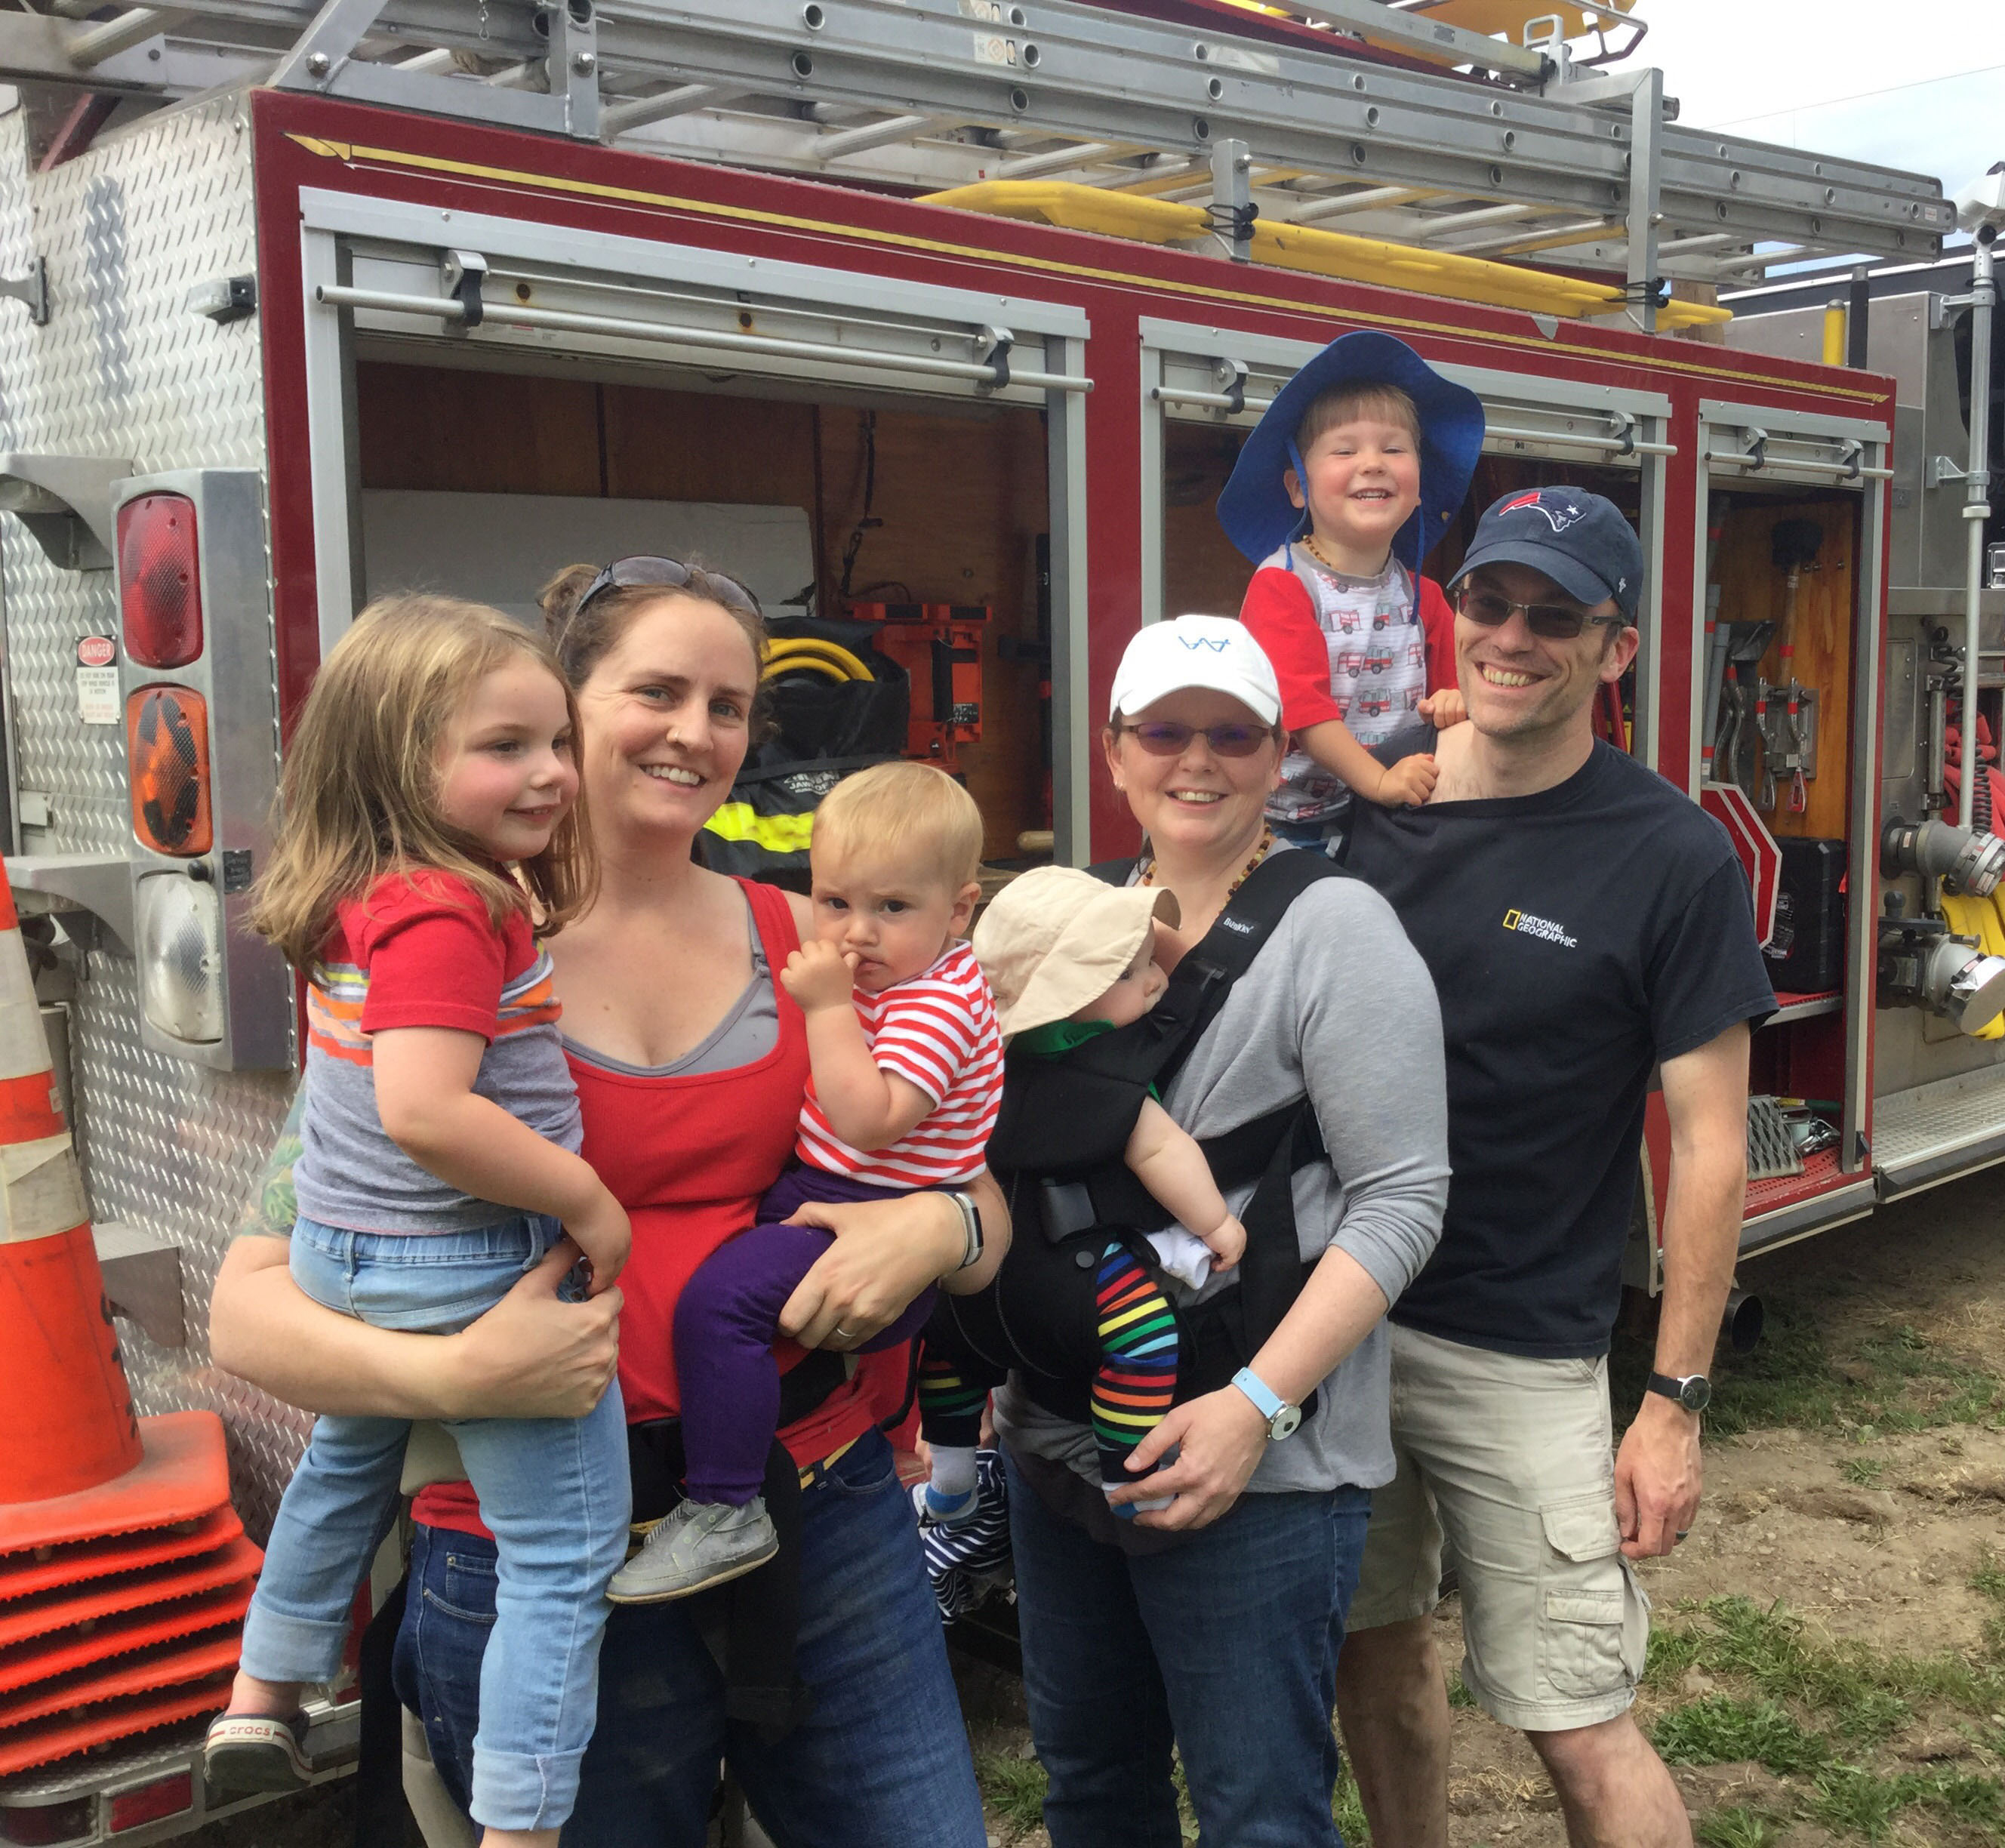 Familes explore a fire truck during the Jefferson Scoop fundraiser for Jefferson Fire and Rescue on Saturday, June 23. (Photo courtesy Joe Holland)